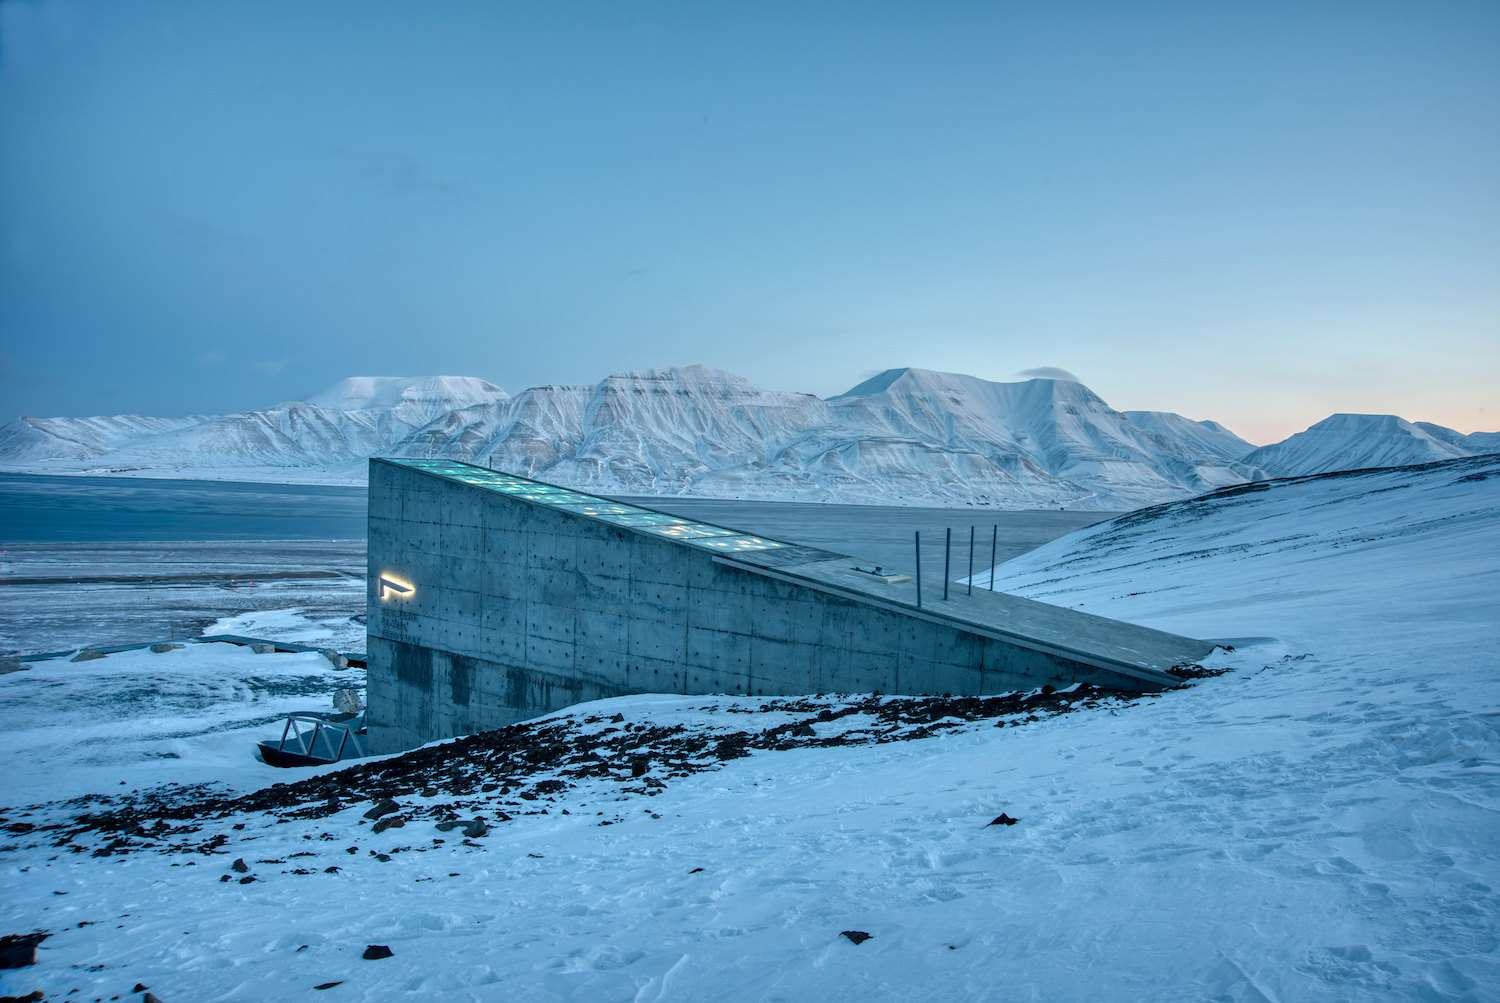 The entrance to the Svalbard Global Seed Vault in the snow-covered landscape of Norway